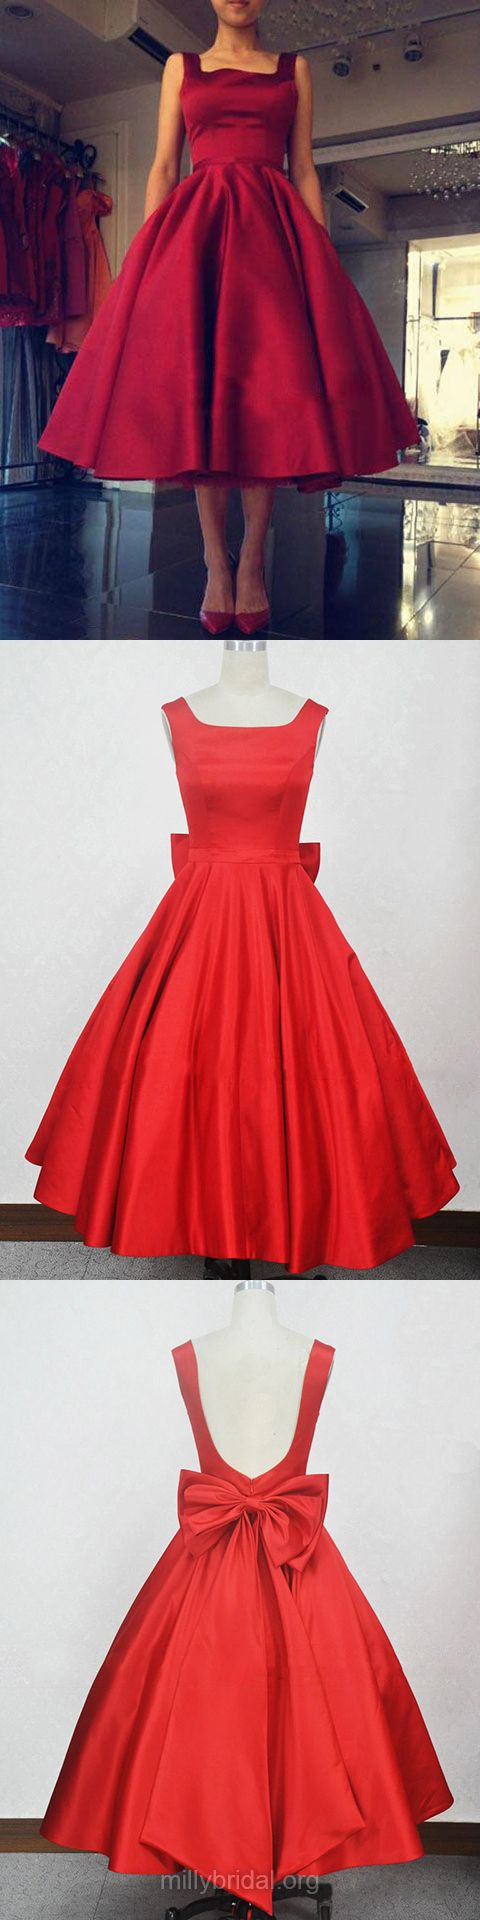 Red prom dresses ball gown short prom dresses square neckline